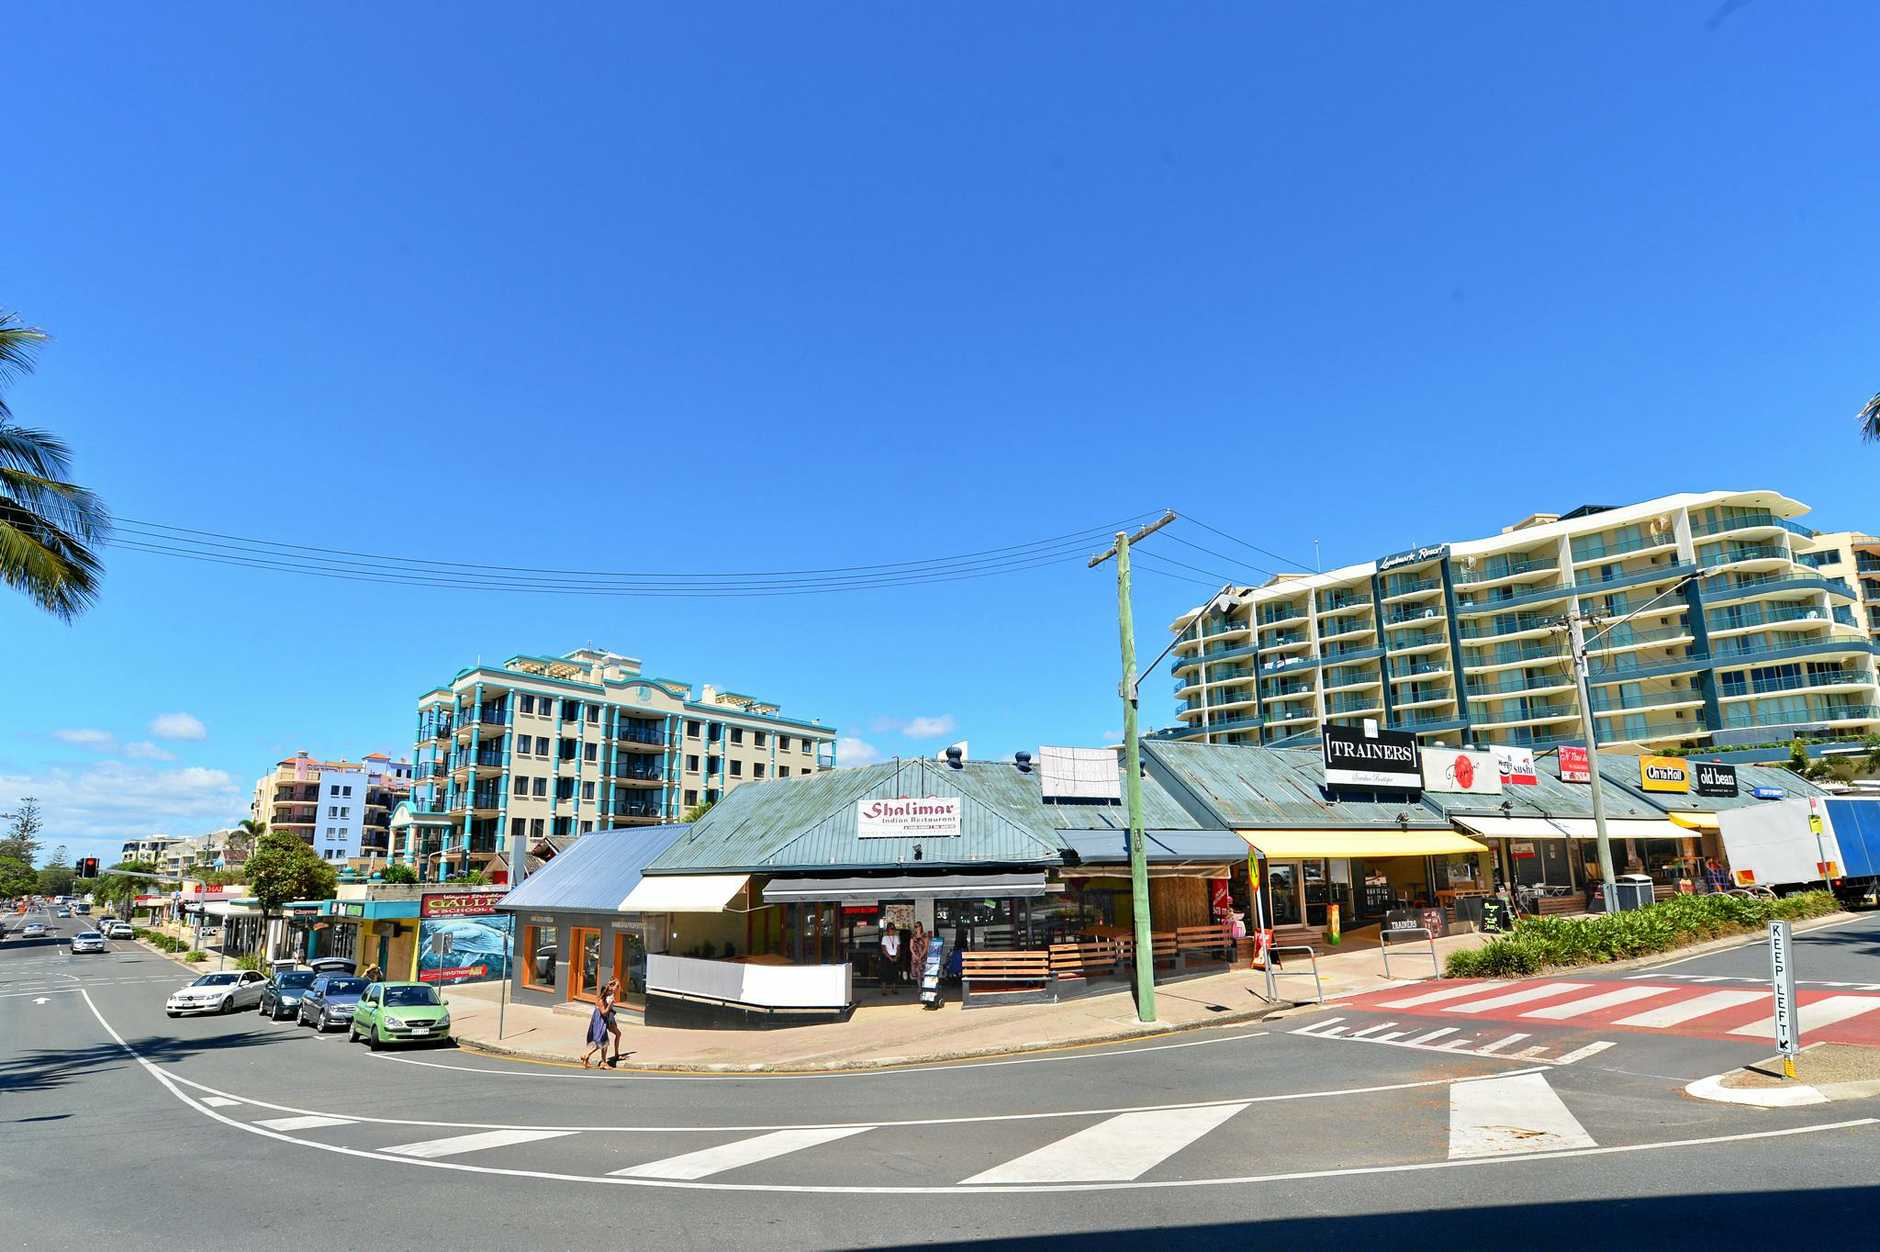 Mooloolaba: The Club eatery site, subject to a 5 star hotel development application by Aria that is currently on hold.